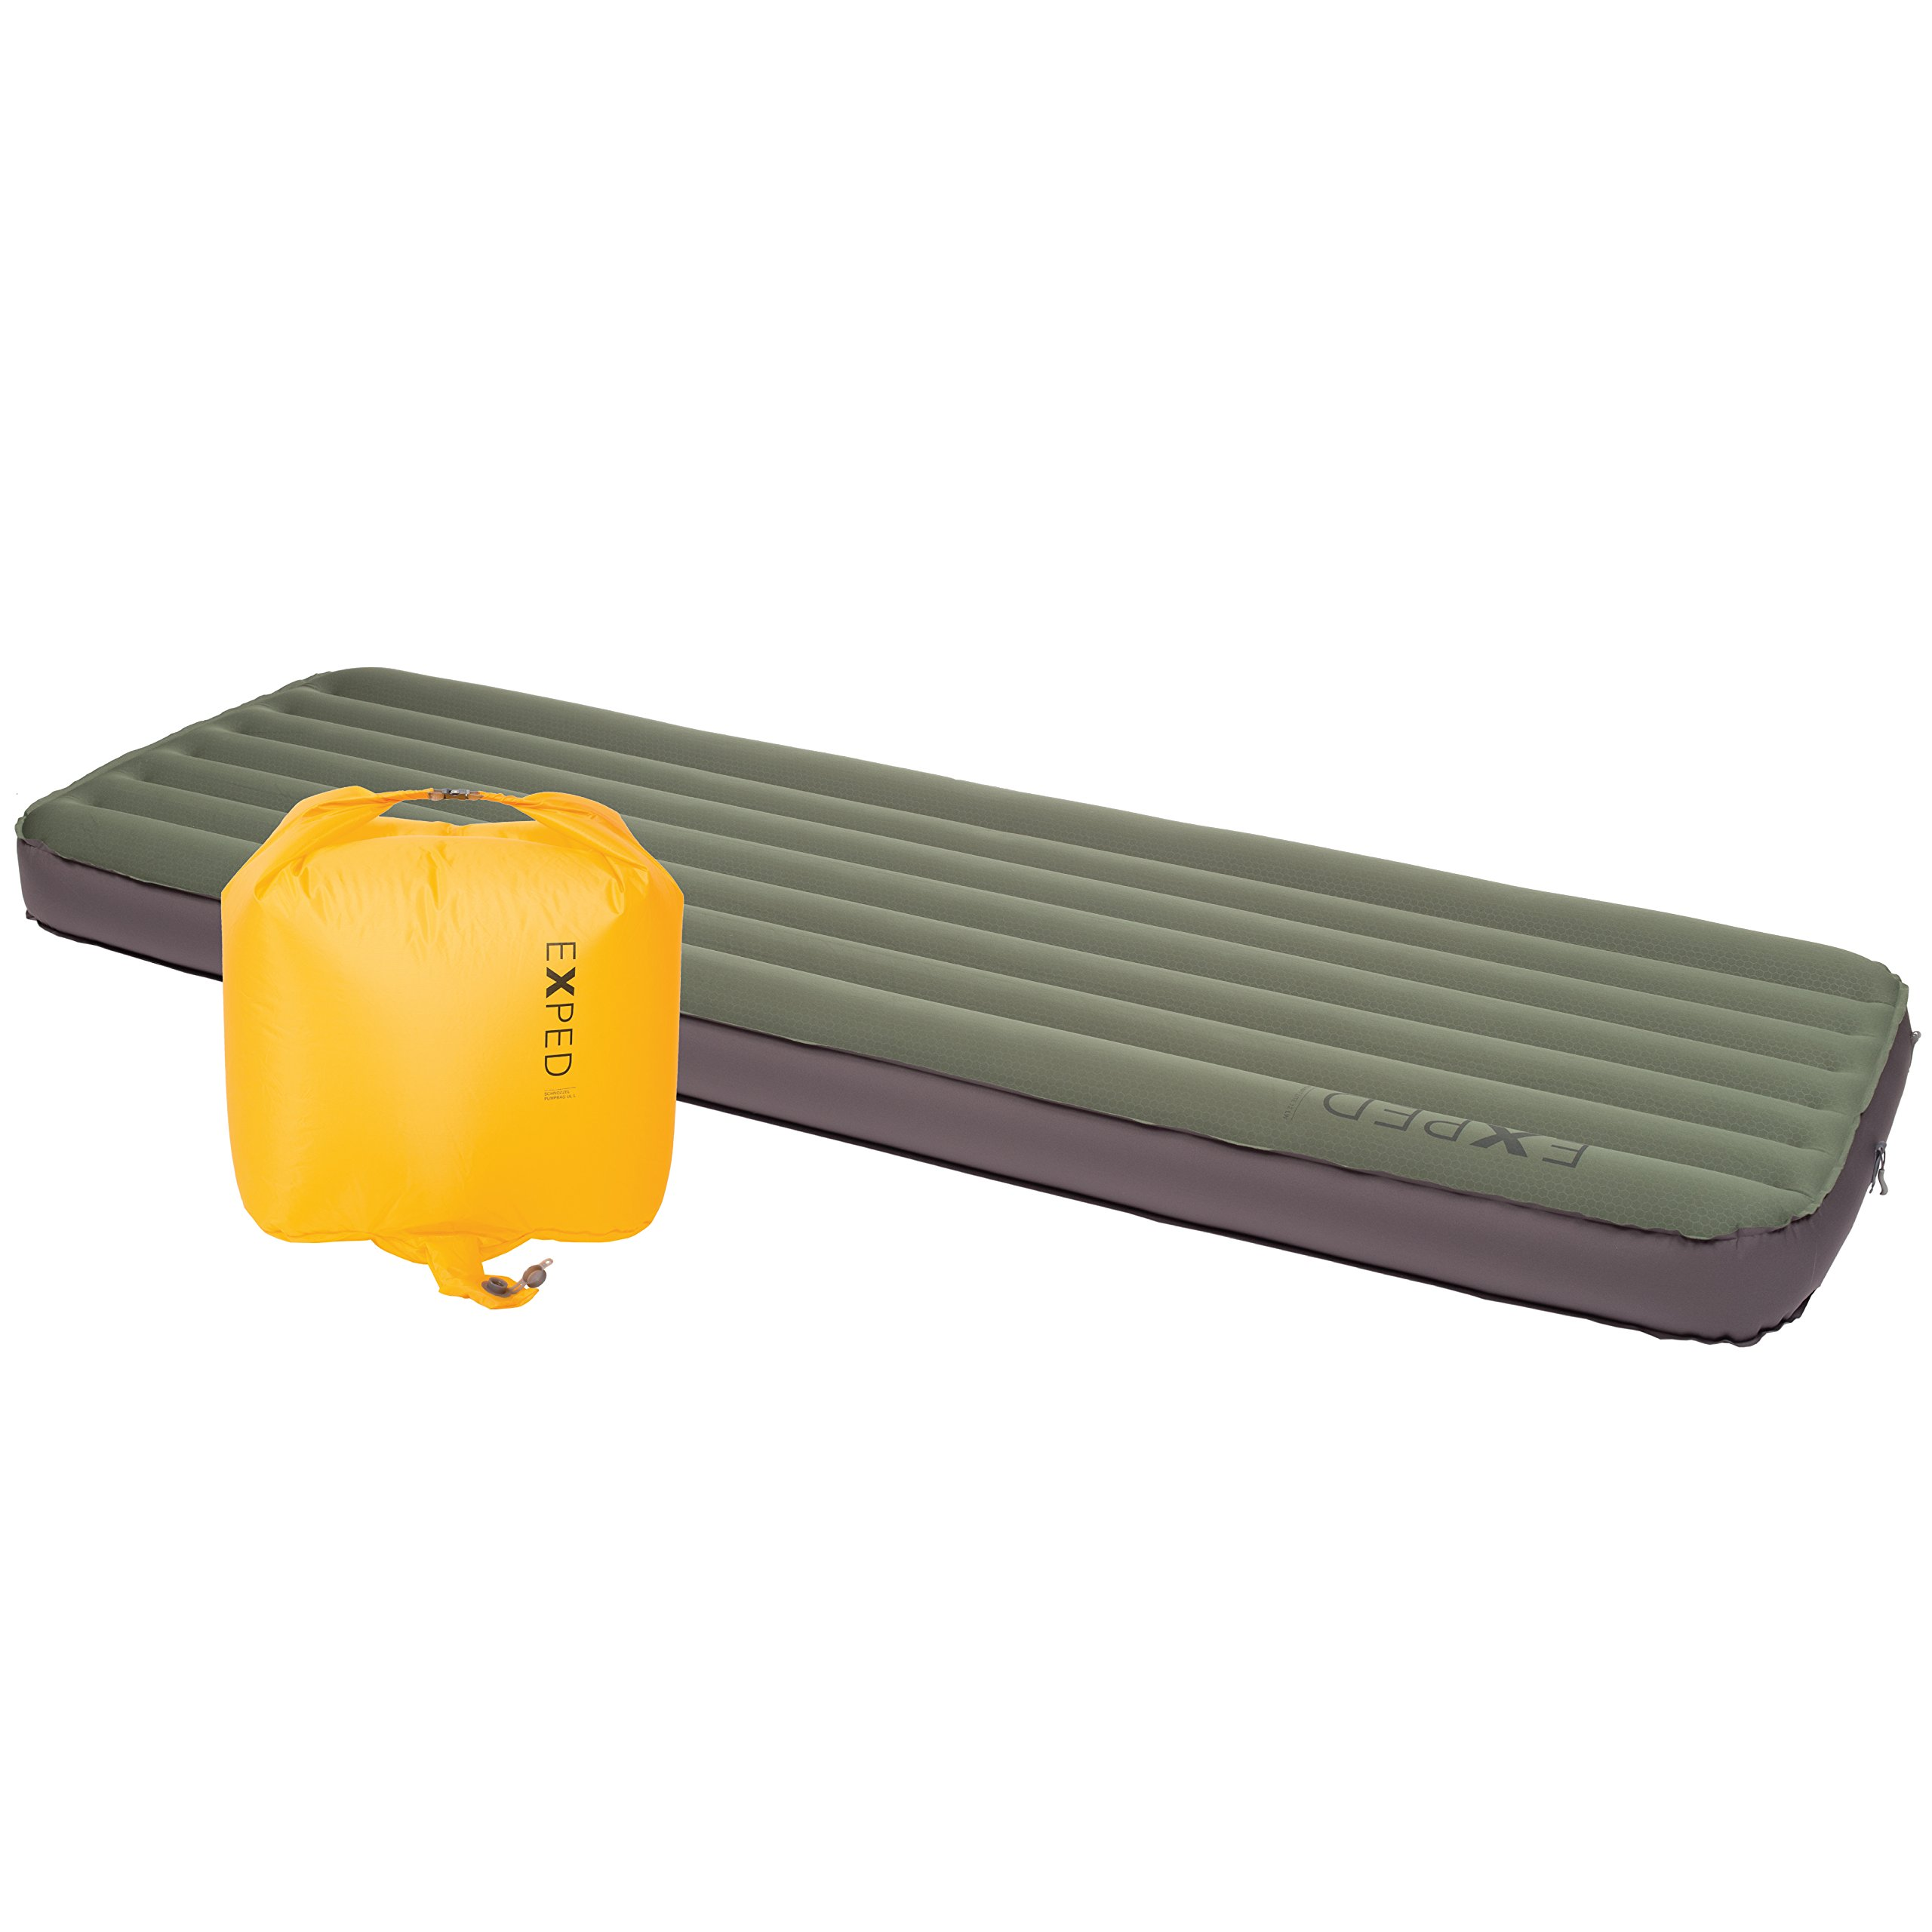 Exped MegaMat Lite 12 Sleeping Pad, Green, Large Wide by Exped